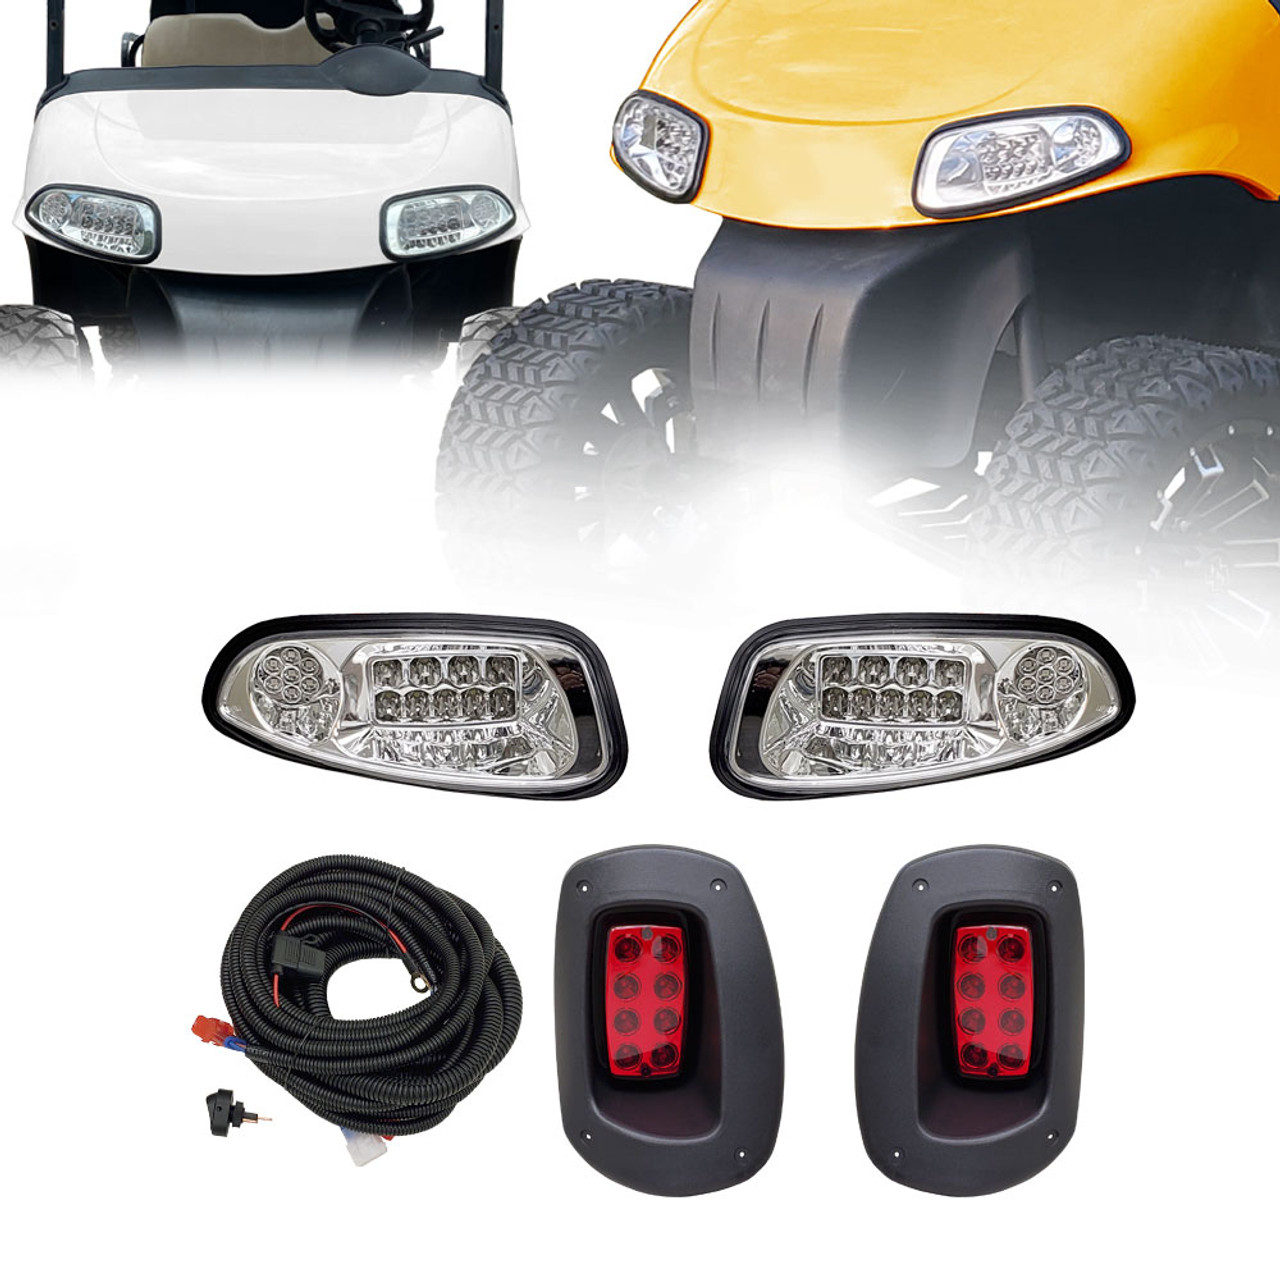 ProFormX Upgradable LED Light Kit for E-Z-Go TXT-Freedom-T48 (2014 and up) - Plug & Play Installation